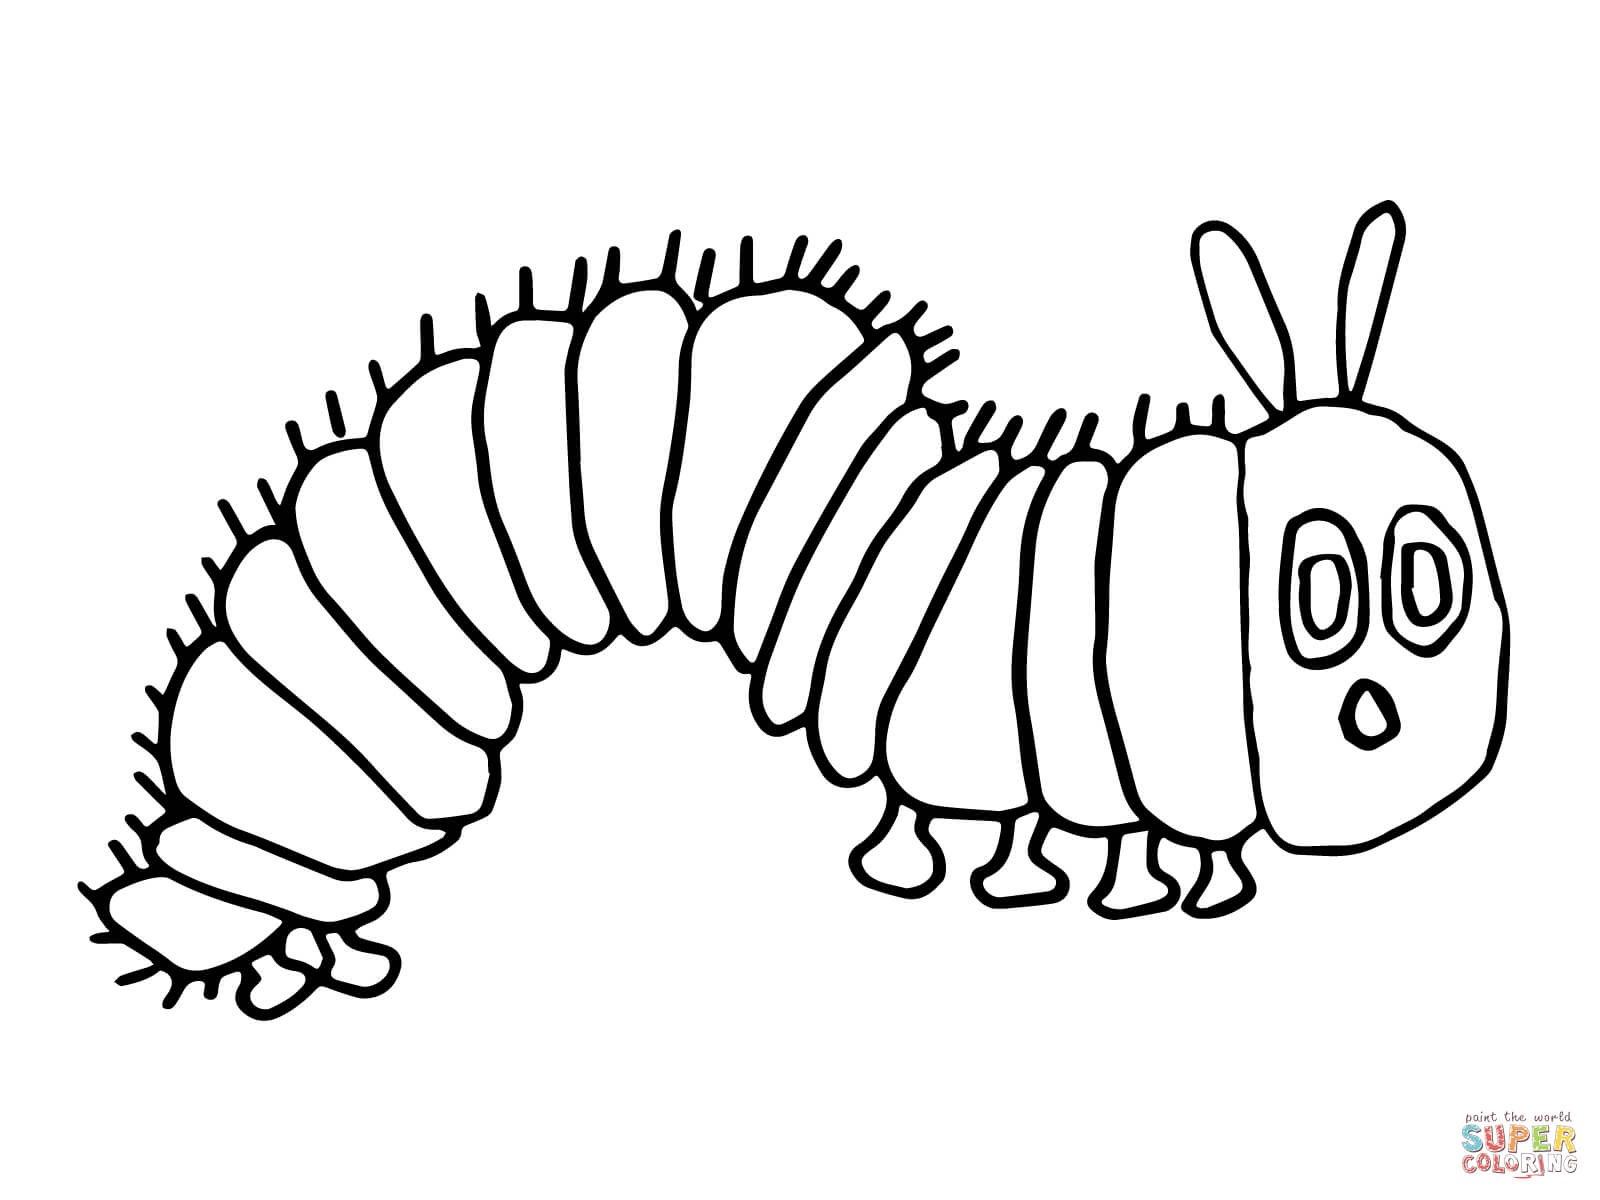 Clean image intended for caterpillar printable